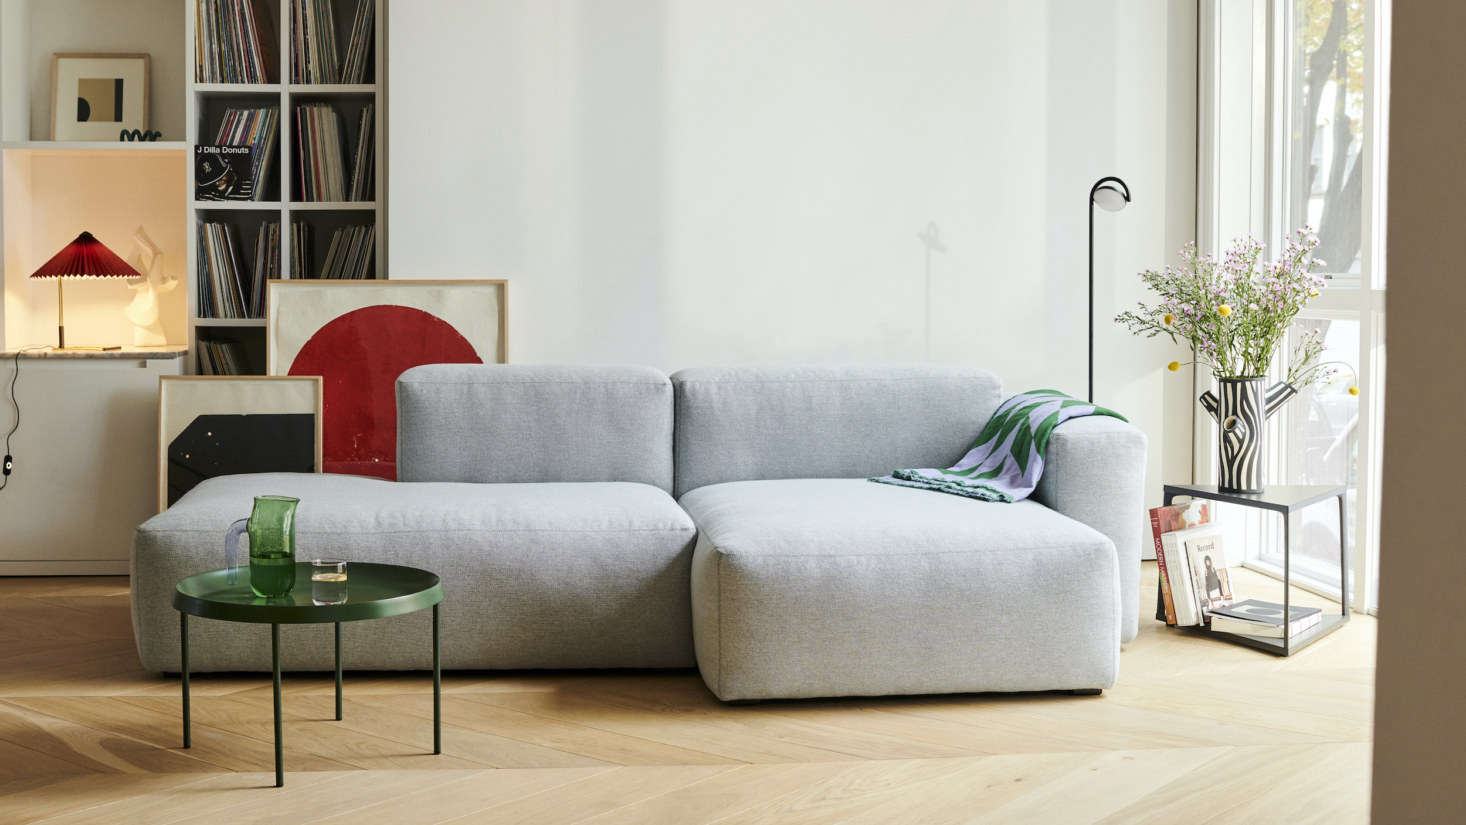 First up: the Mags Sofa (this one is the Mags Soft Low Sectional with Chaise, $